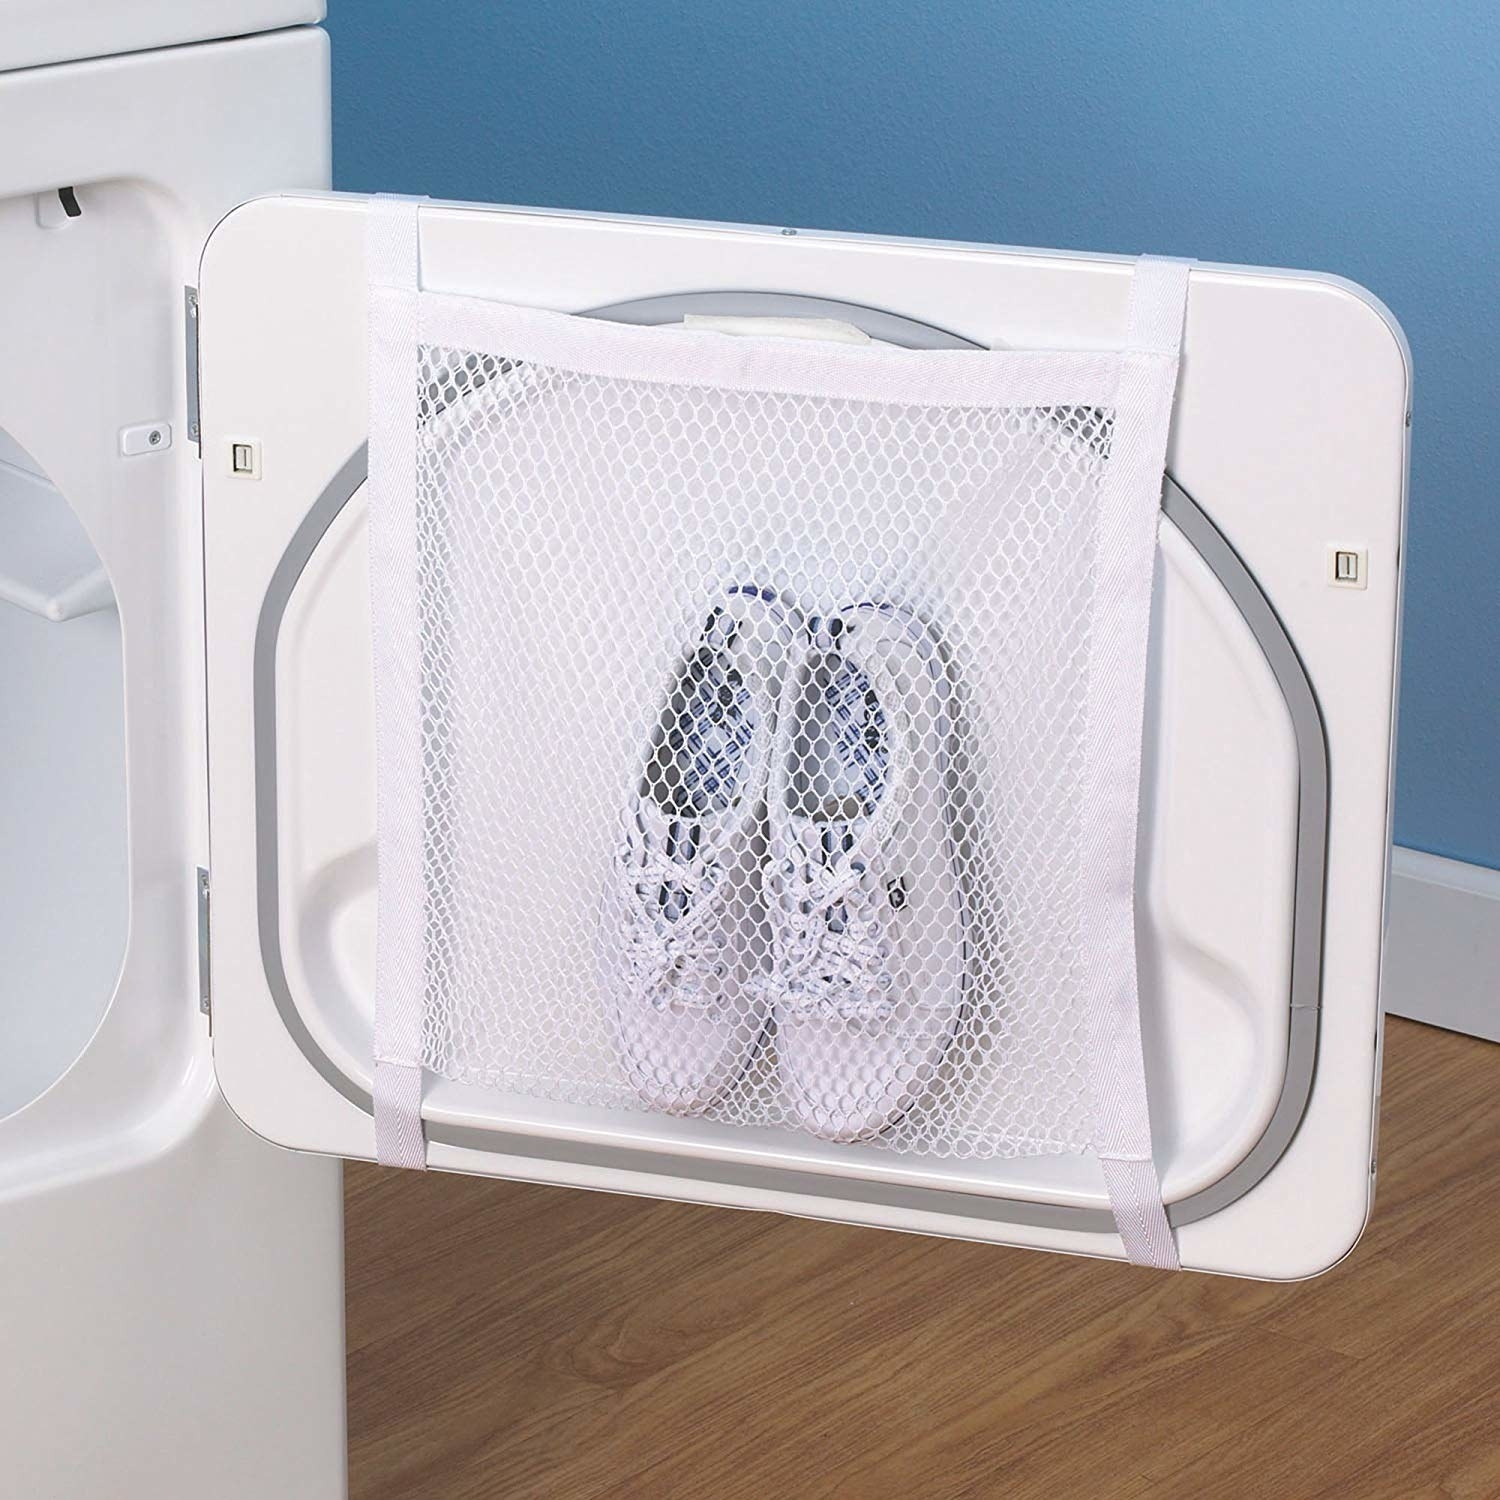 Square mesh pocket with two tennis shoes attached to inside washer door